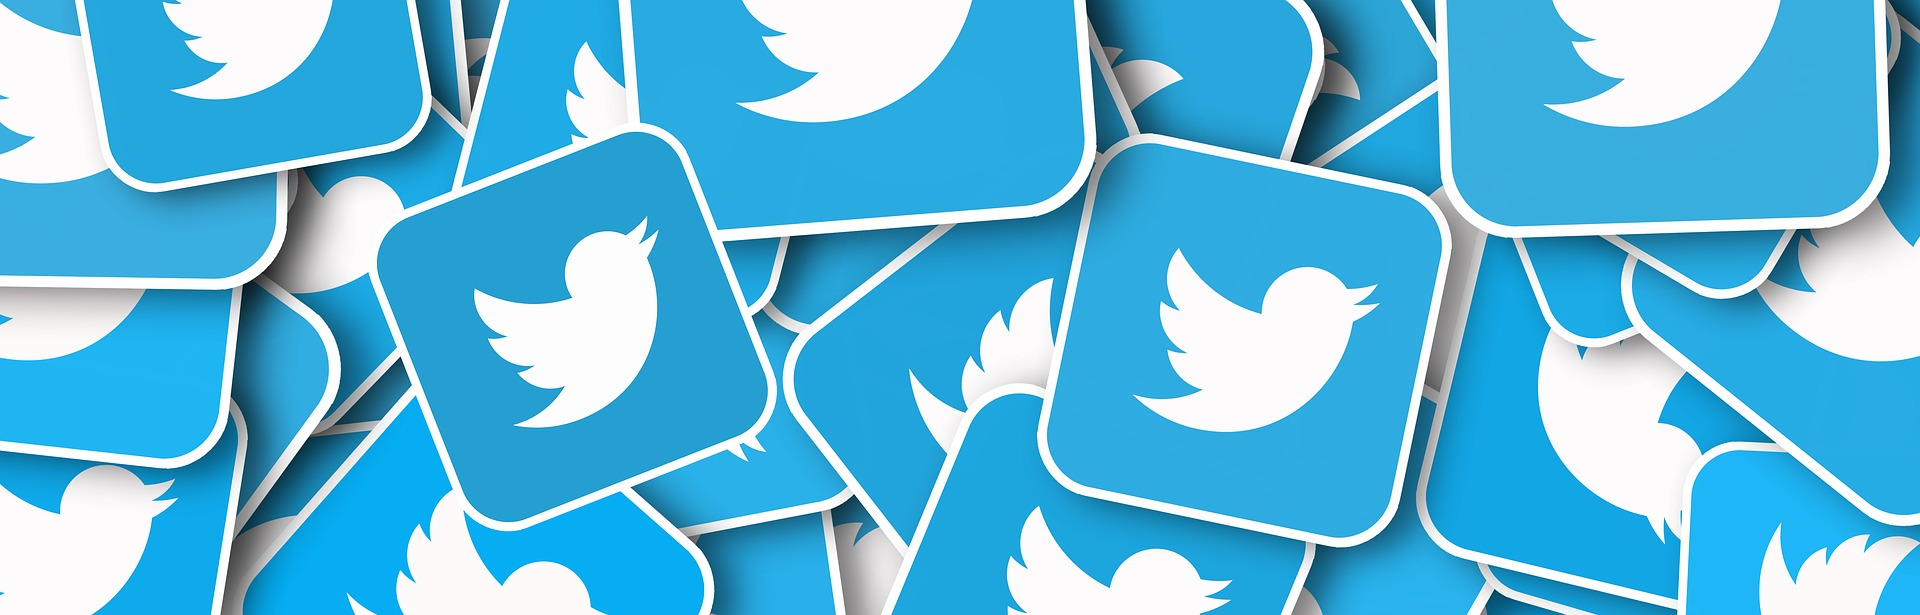 How To Get The Best Out Of Twitter